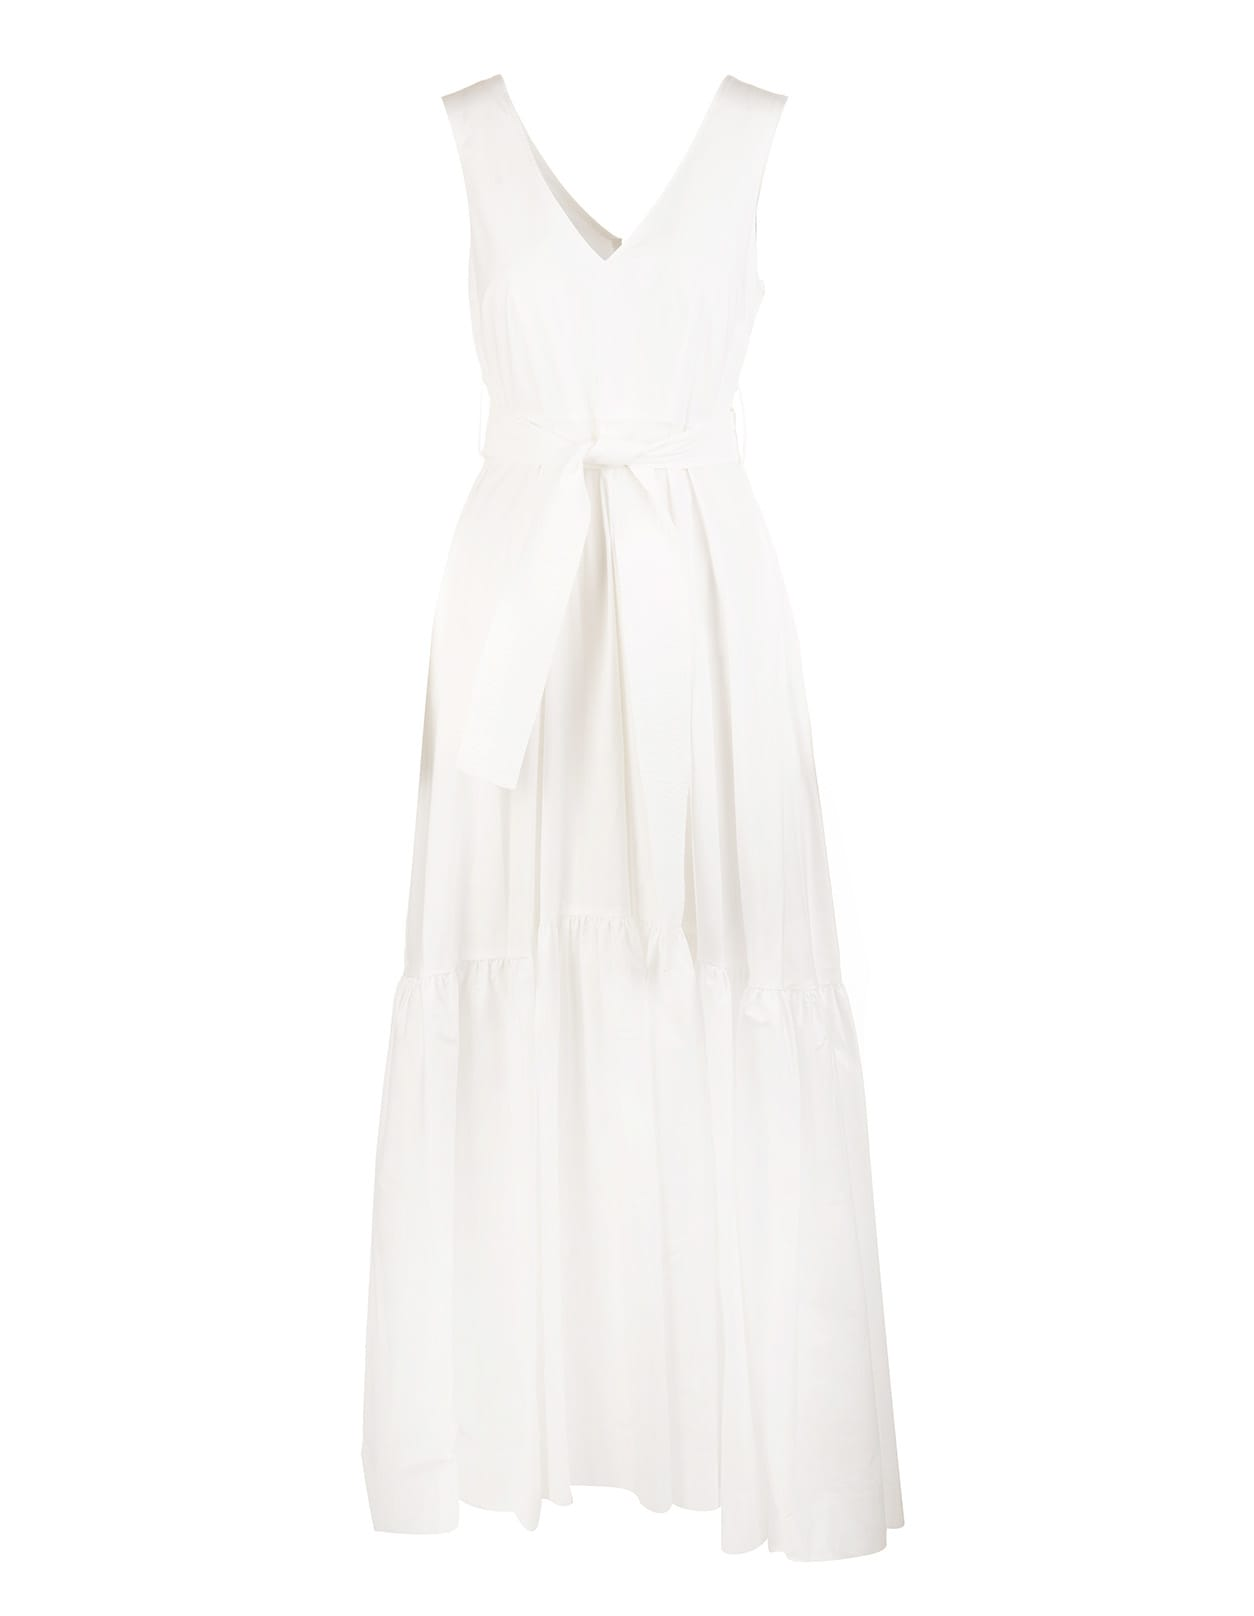 A.R.O.H. long dress in white cotton with front and back V-neck, armholes, soft skirt with horizontal bands, back zip closure and waist highlighted by a belt in tone with front knot. Composition: 100% Cotton